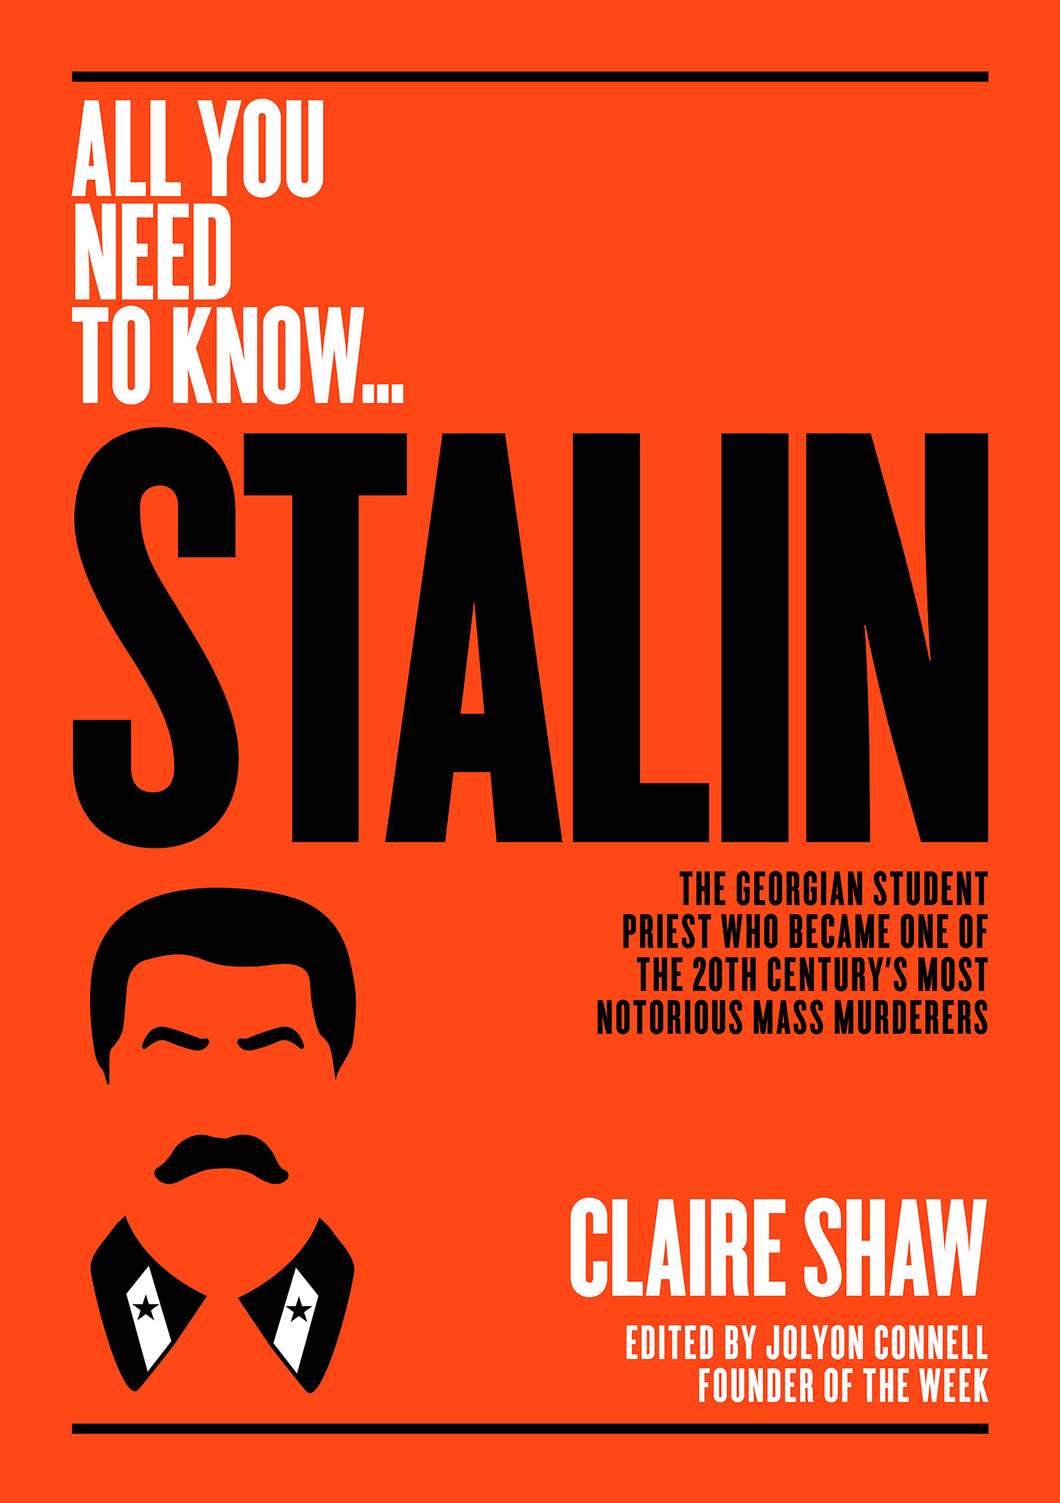 Stalin: The Georgian student priest who became one of the 20th century's most notorious mass murderers (All you need to know)